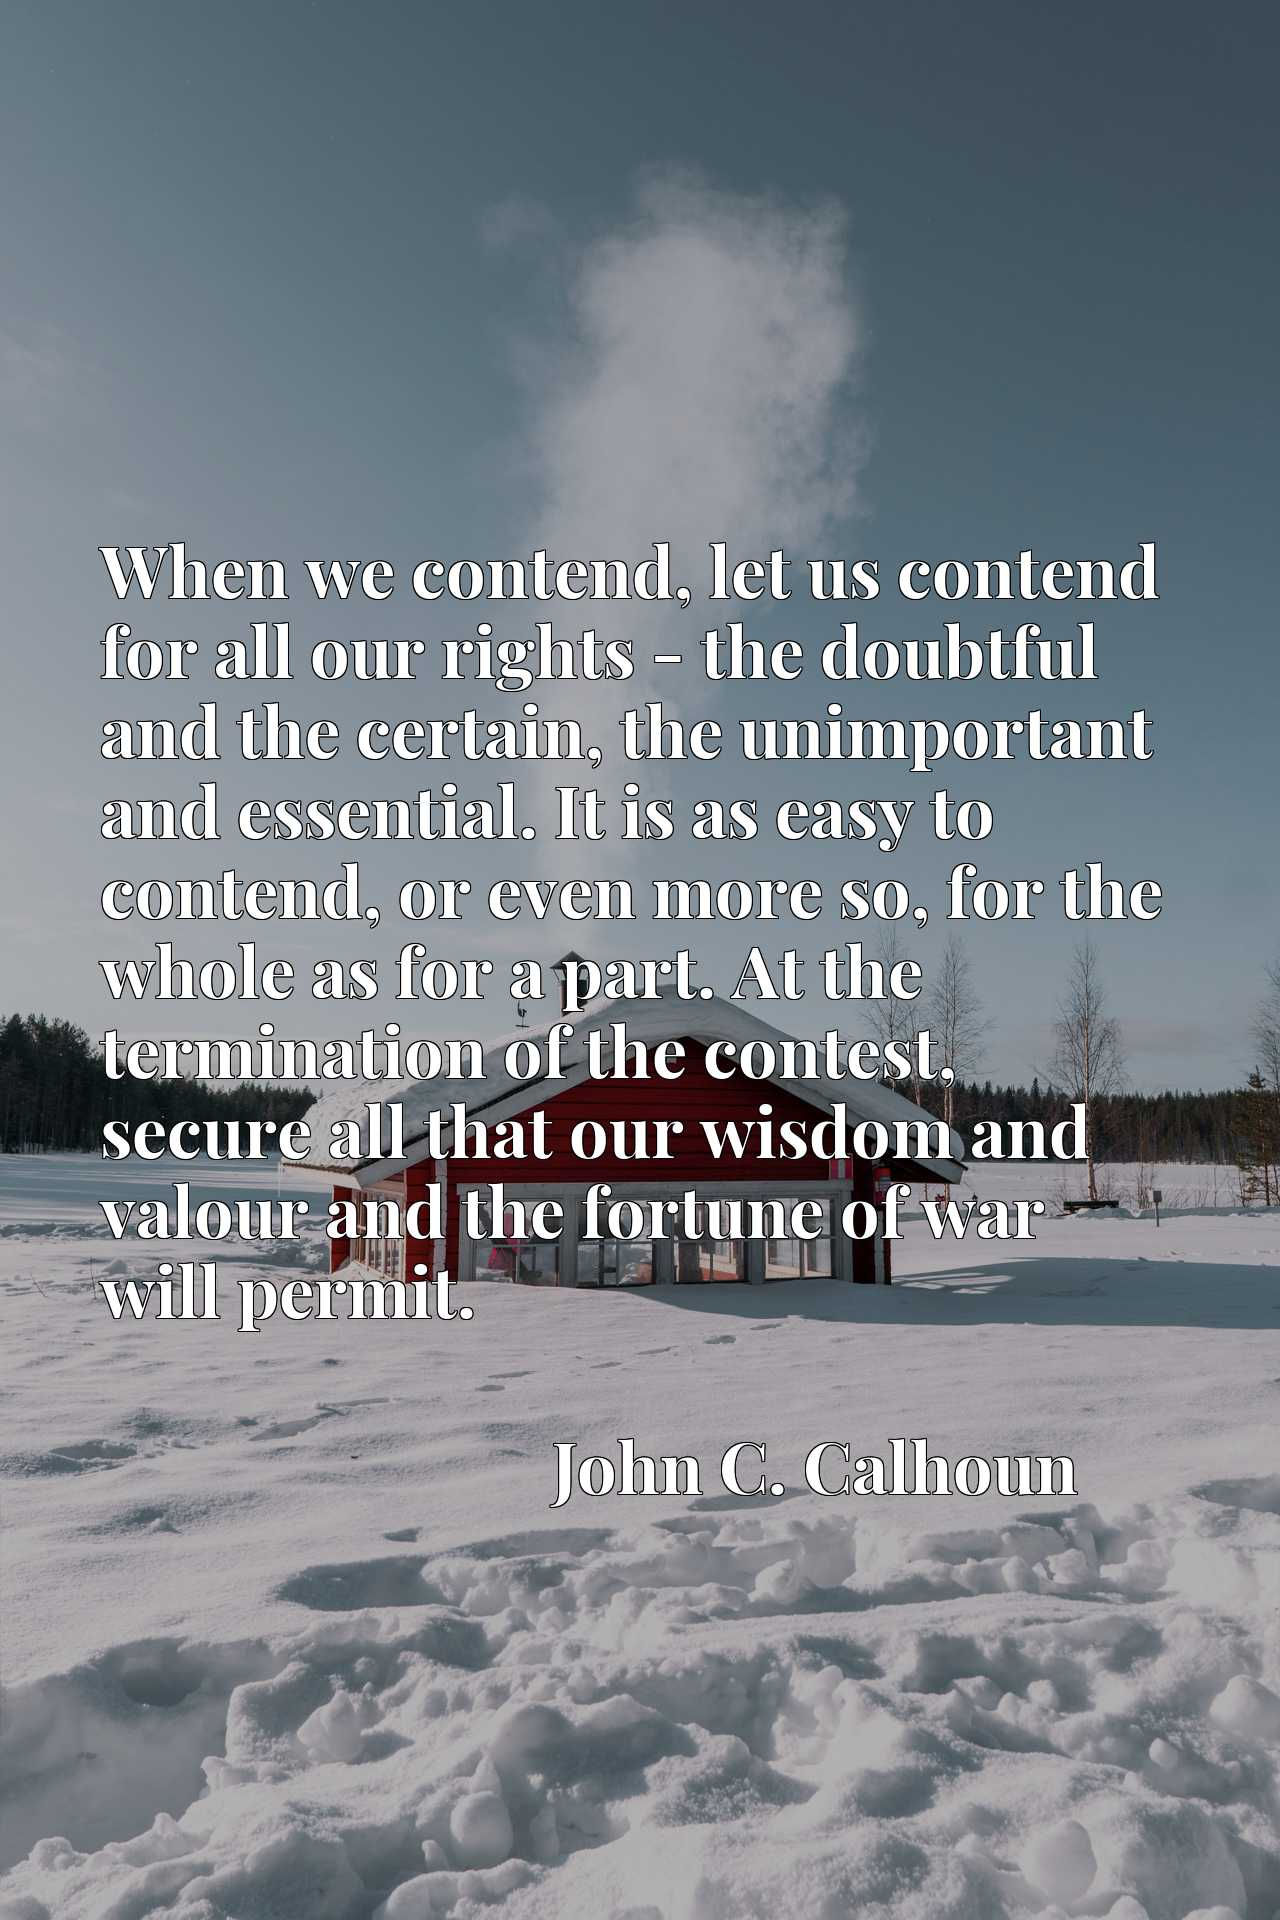 When we contend, let us contend for all our rights - the doubtful and the certain, the unimportant and essential. It is as easy to contend, or even more so, for the whole as for a part. At the termination of the contest, secure all that our wisdom and valour and the fortune of war will permit.